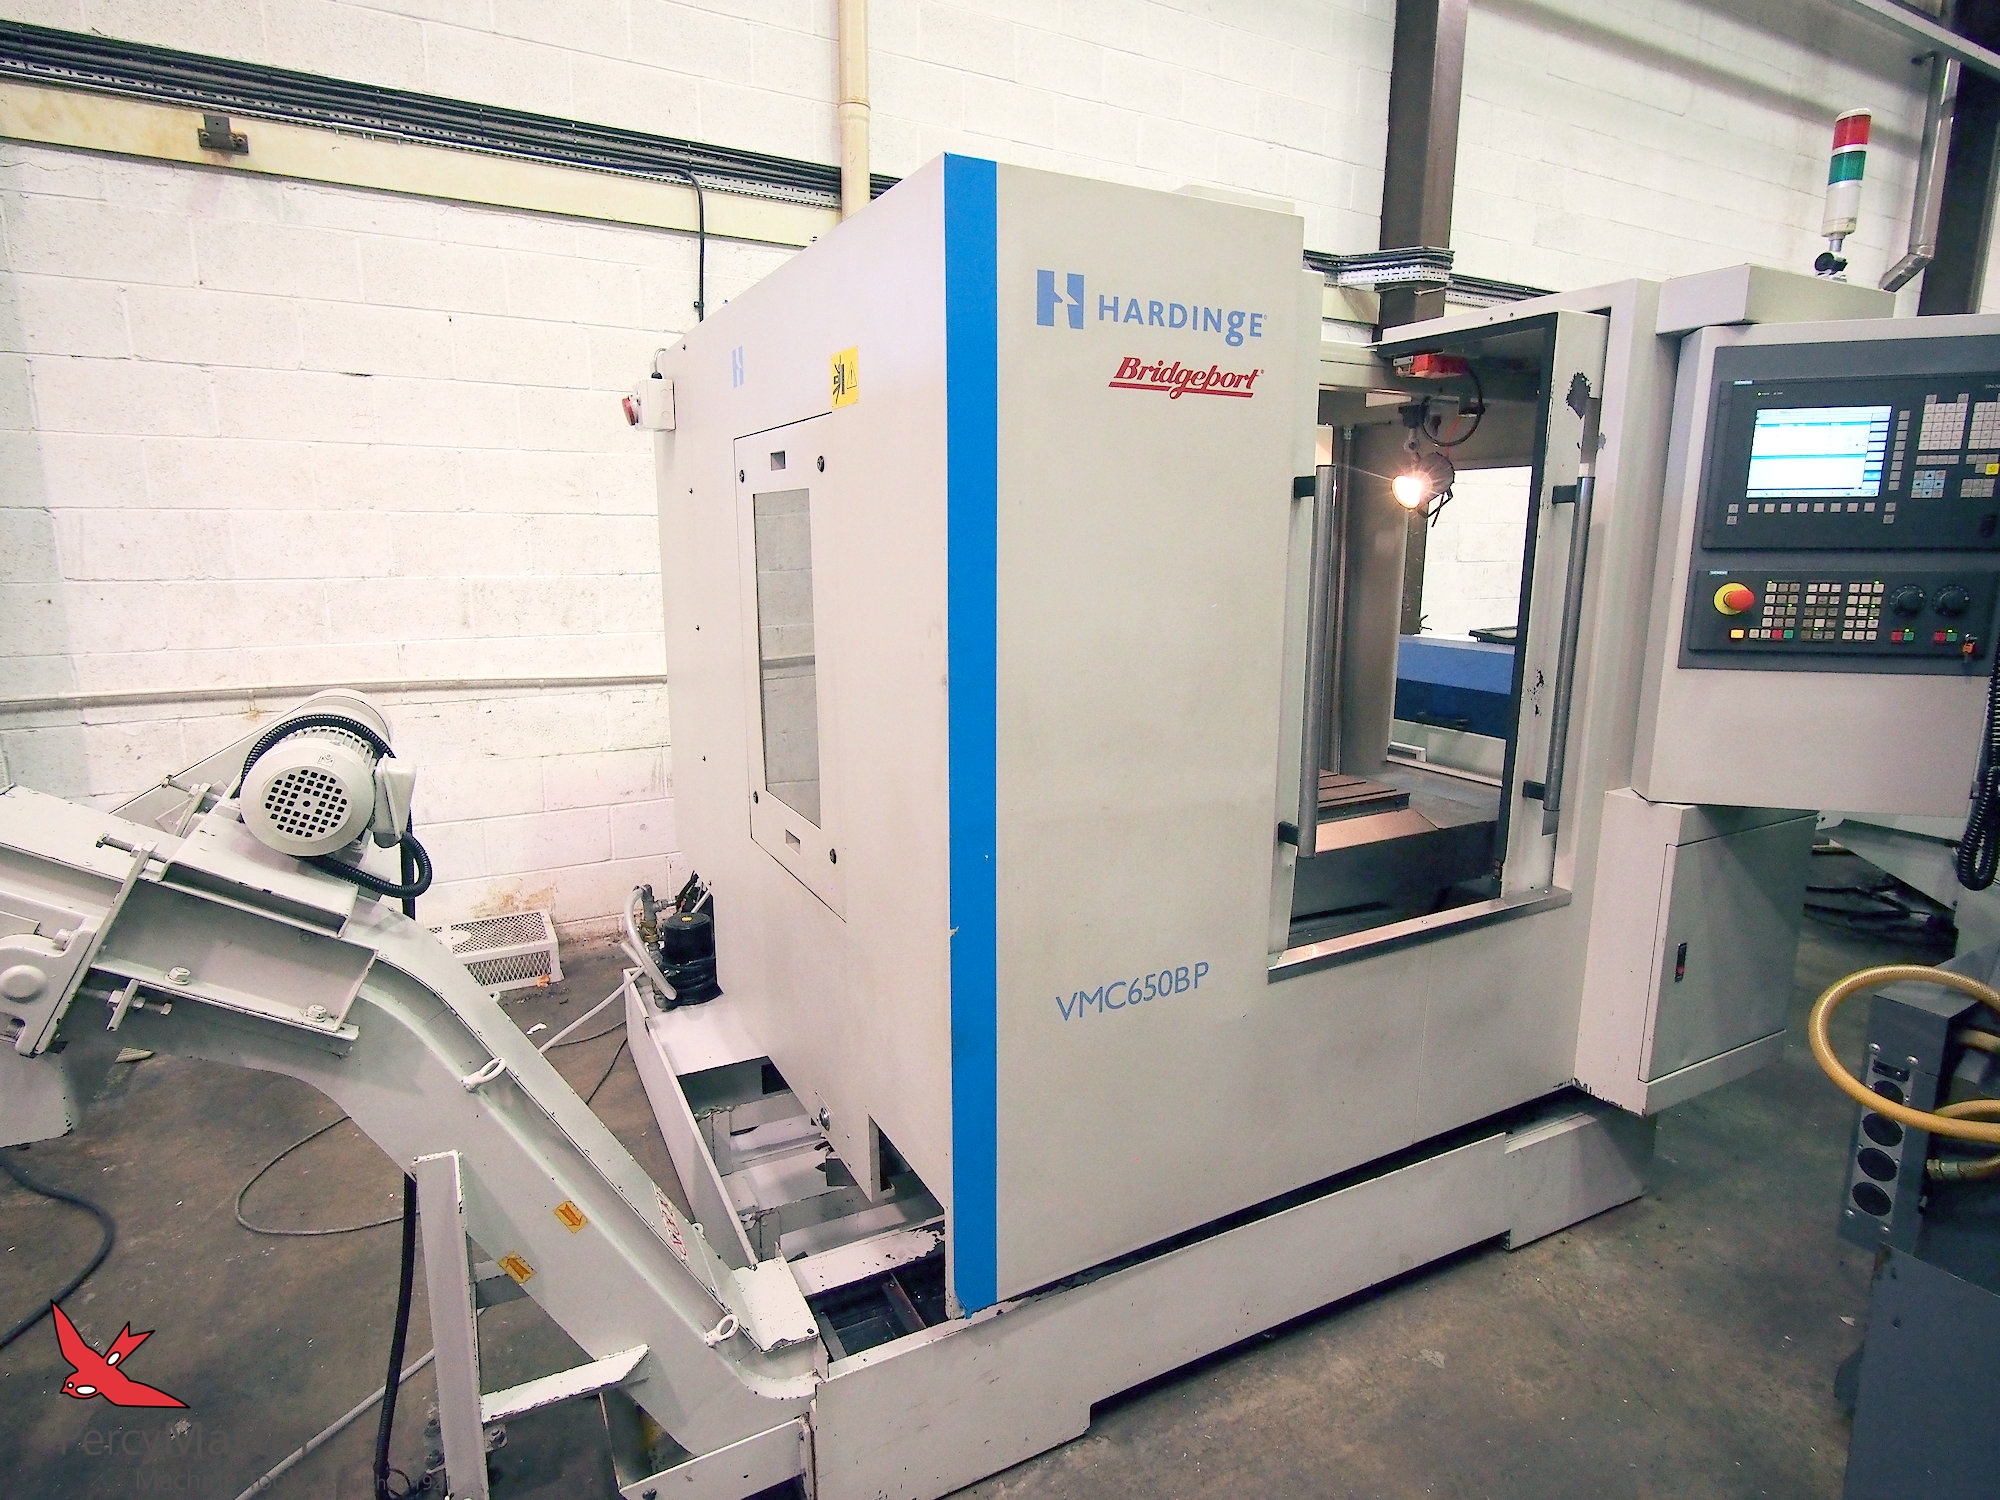 Bridgeport Hardinge VMC650BP